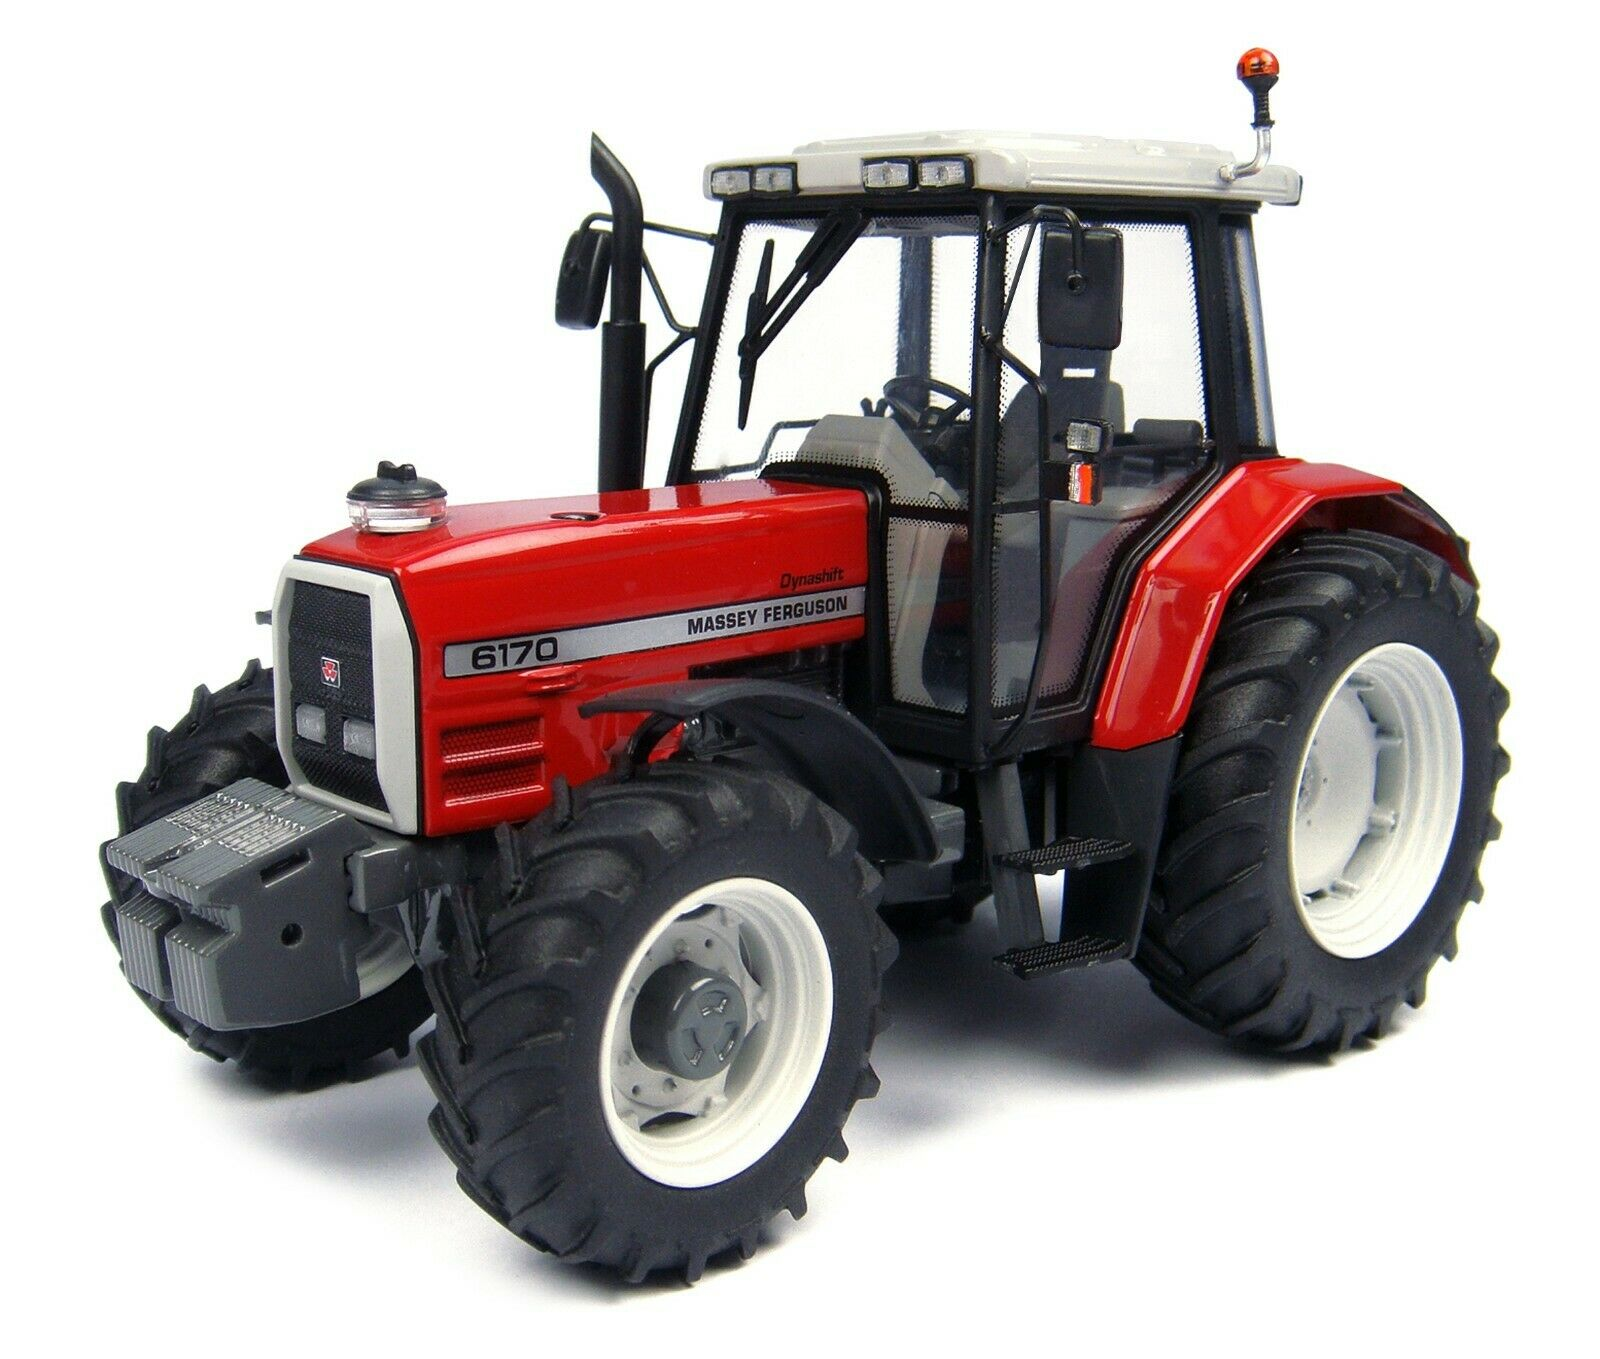 MASSEY FERGUSON 6170 TRACTOR 1 32 DIECAST MODEL BY UNIVERSAL HOBBIES UH4202